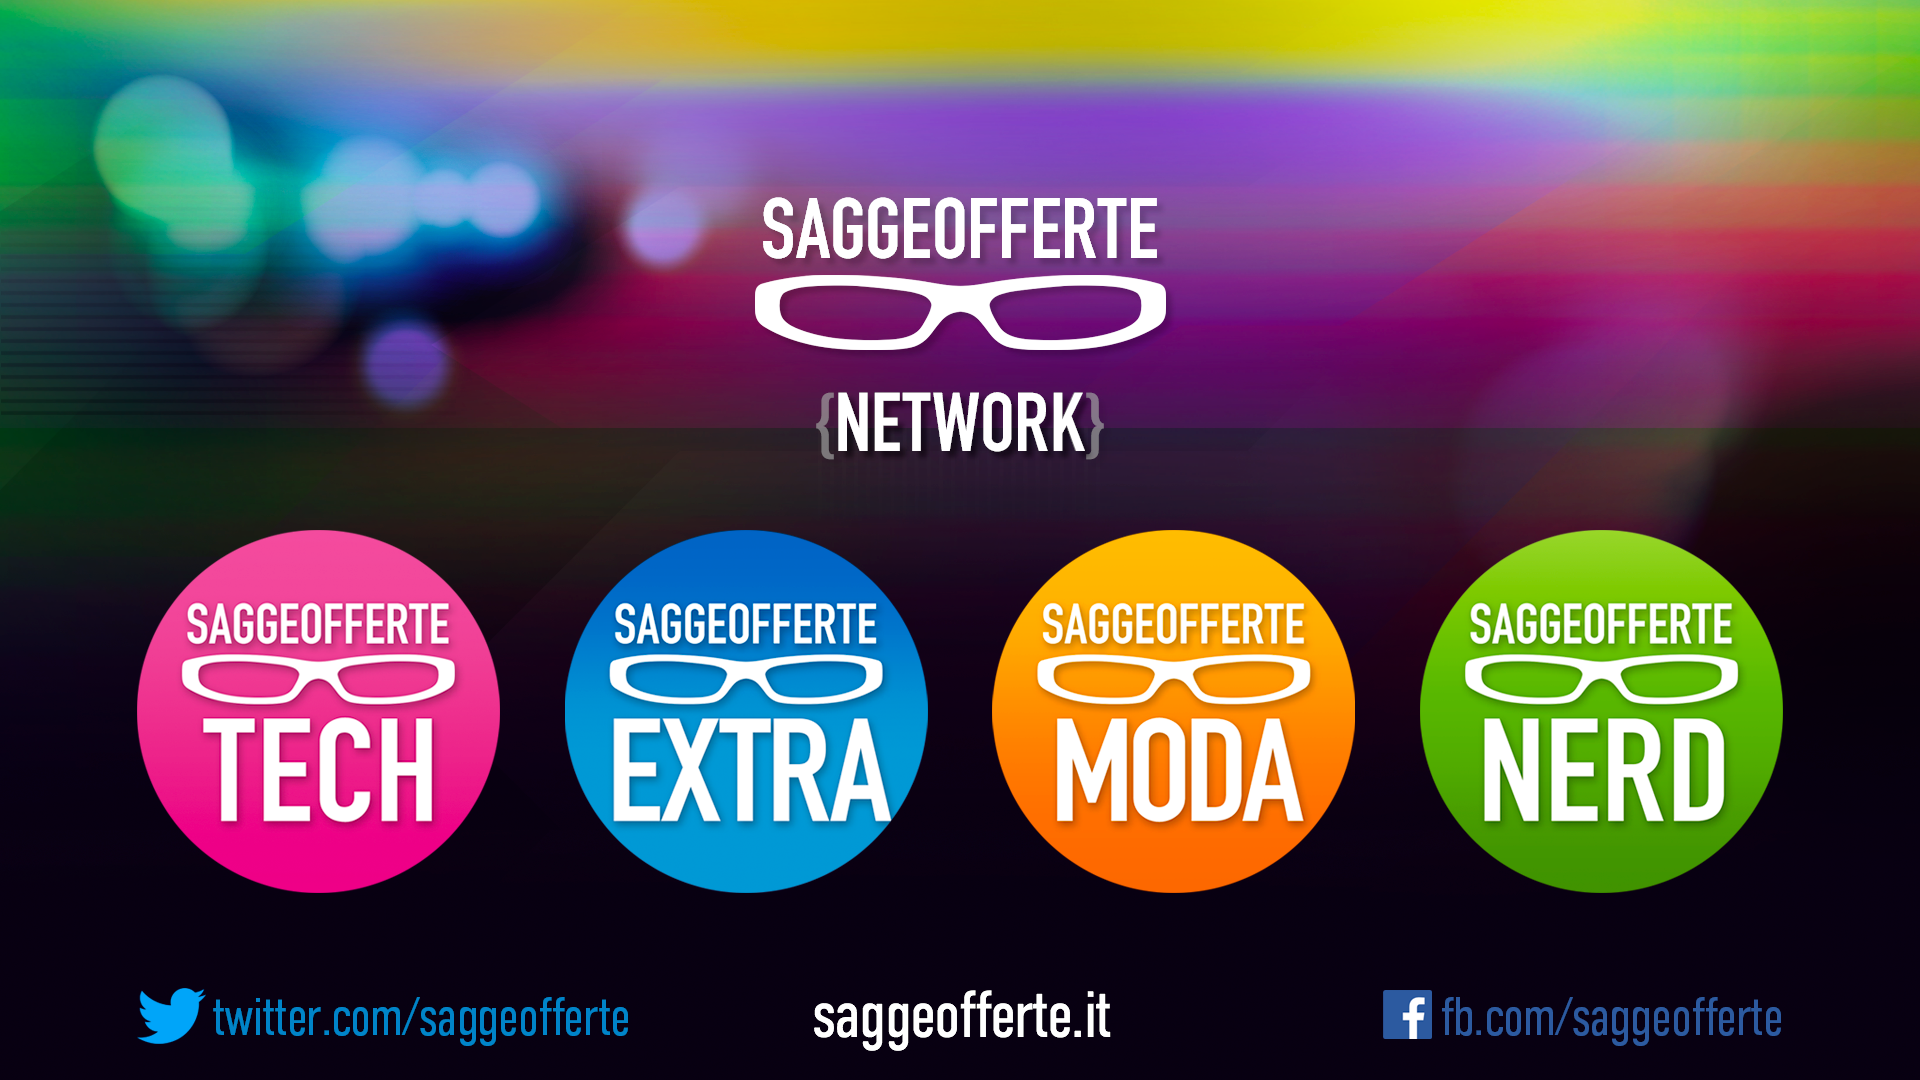 saggeofferte_network